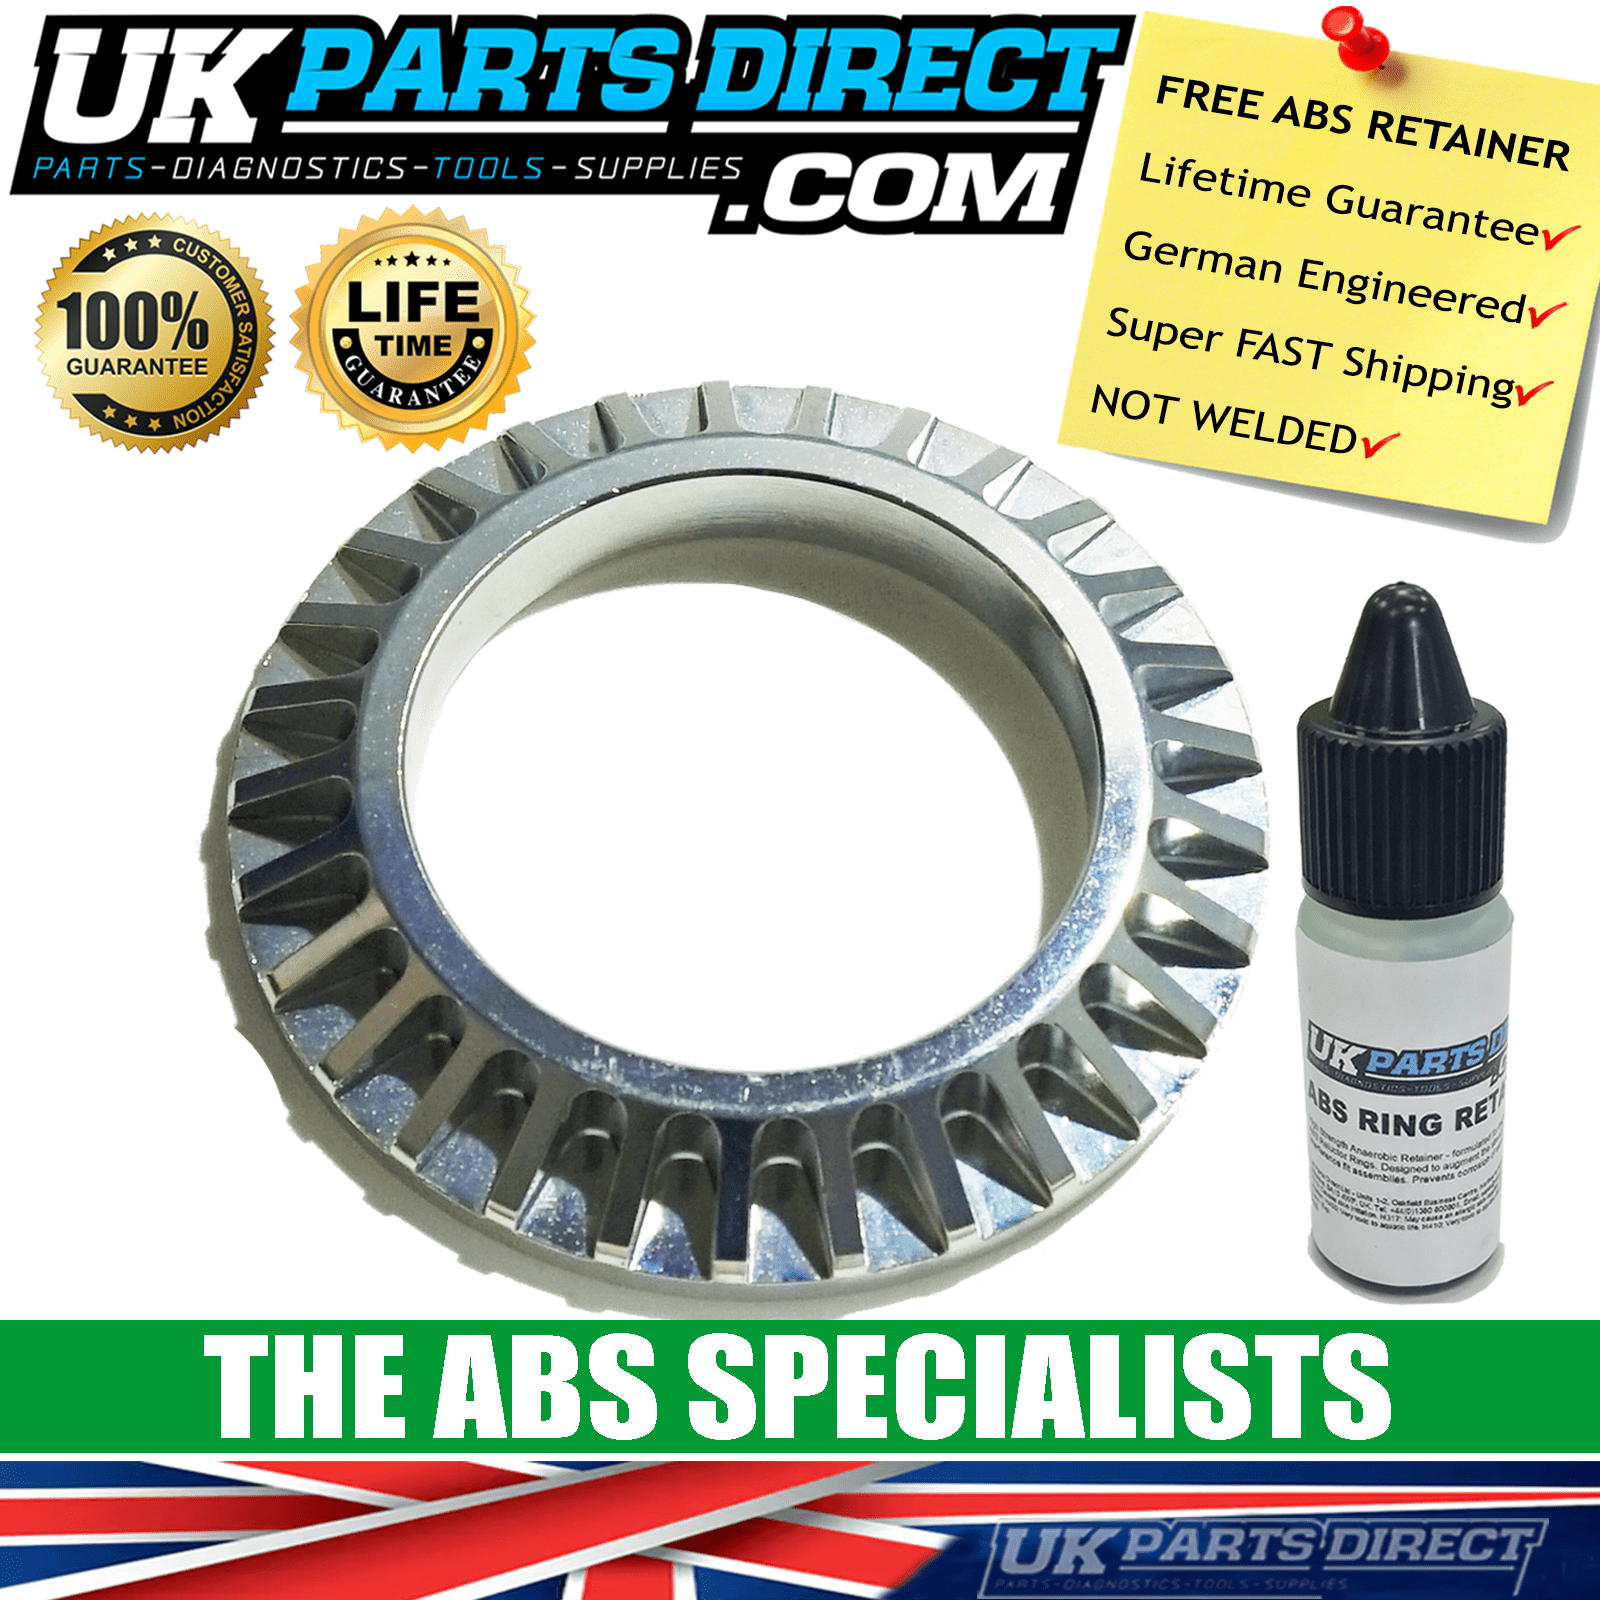 MITSUBISHI SPACESTAR ABS RING-ABS RELUCTOR RING-DRIVESHAFT ABS RING